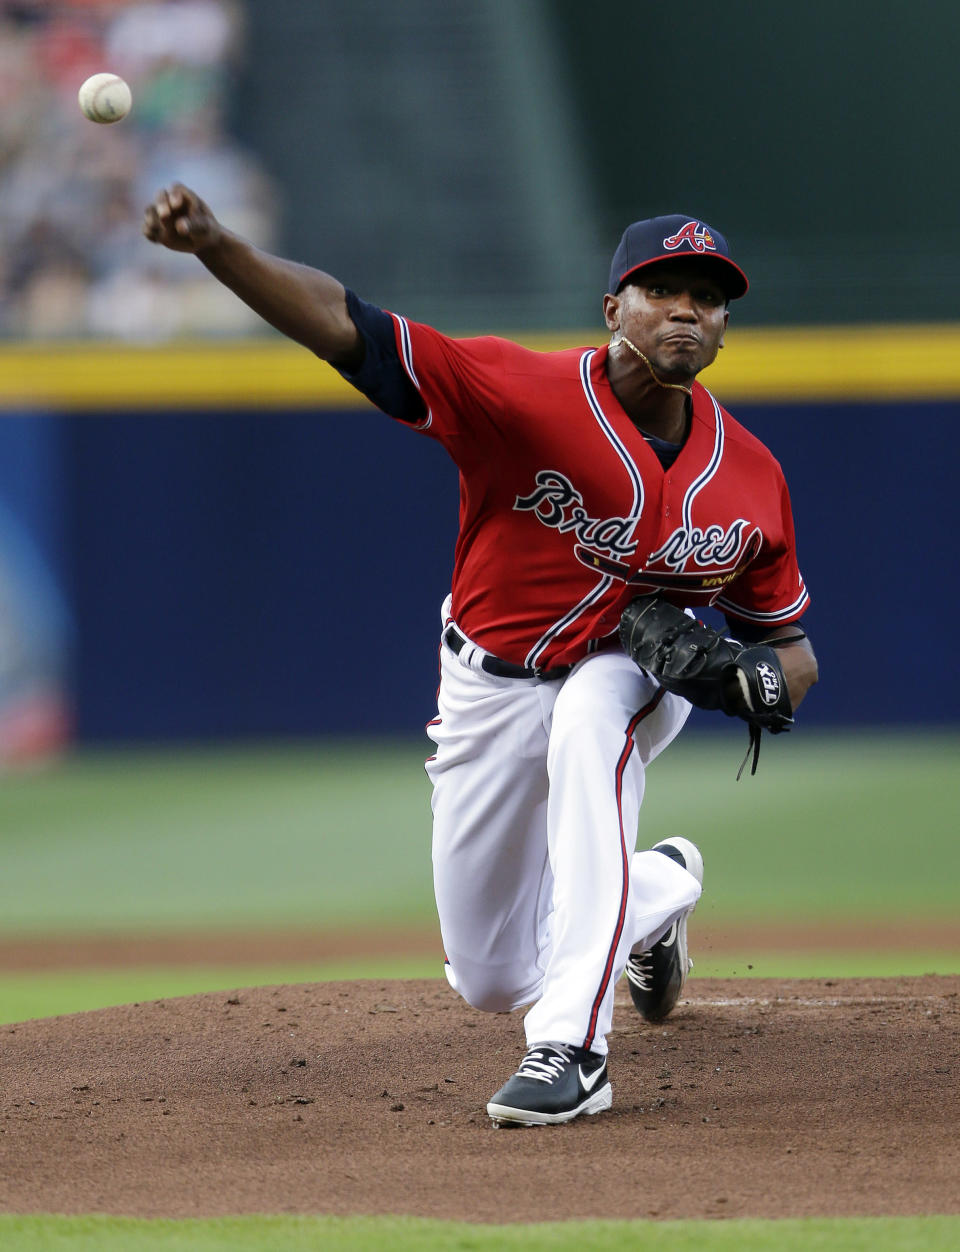 Atlanta Braves starting pitcher Julio Teheran throws in the first inning of a baseball game against the Washington Nationals in Atlanta, Friday, May 31, 2013. (AP Photo/John Bazemore)